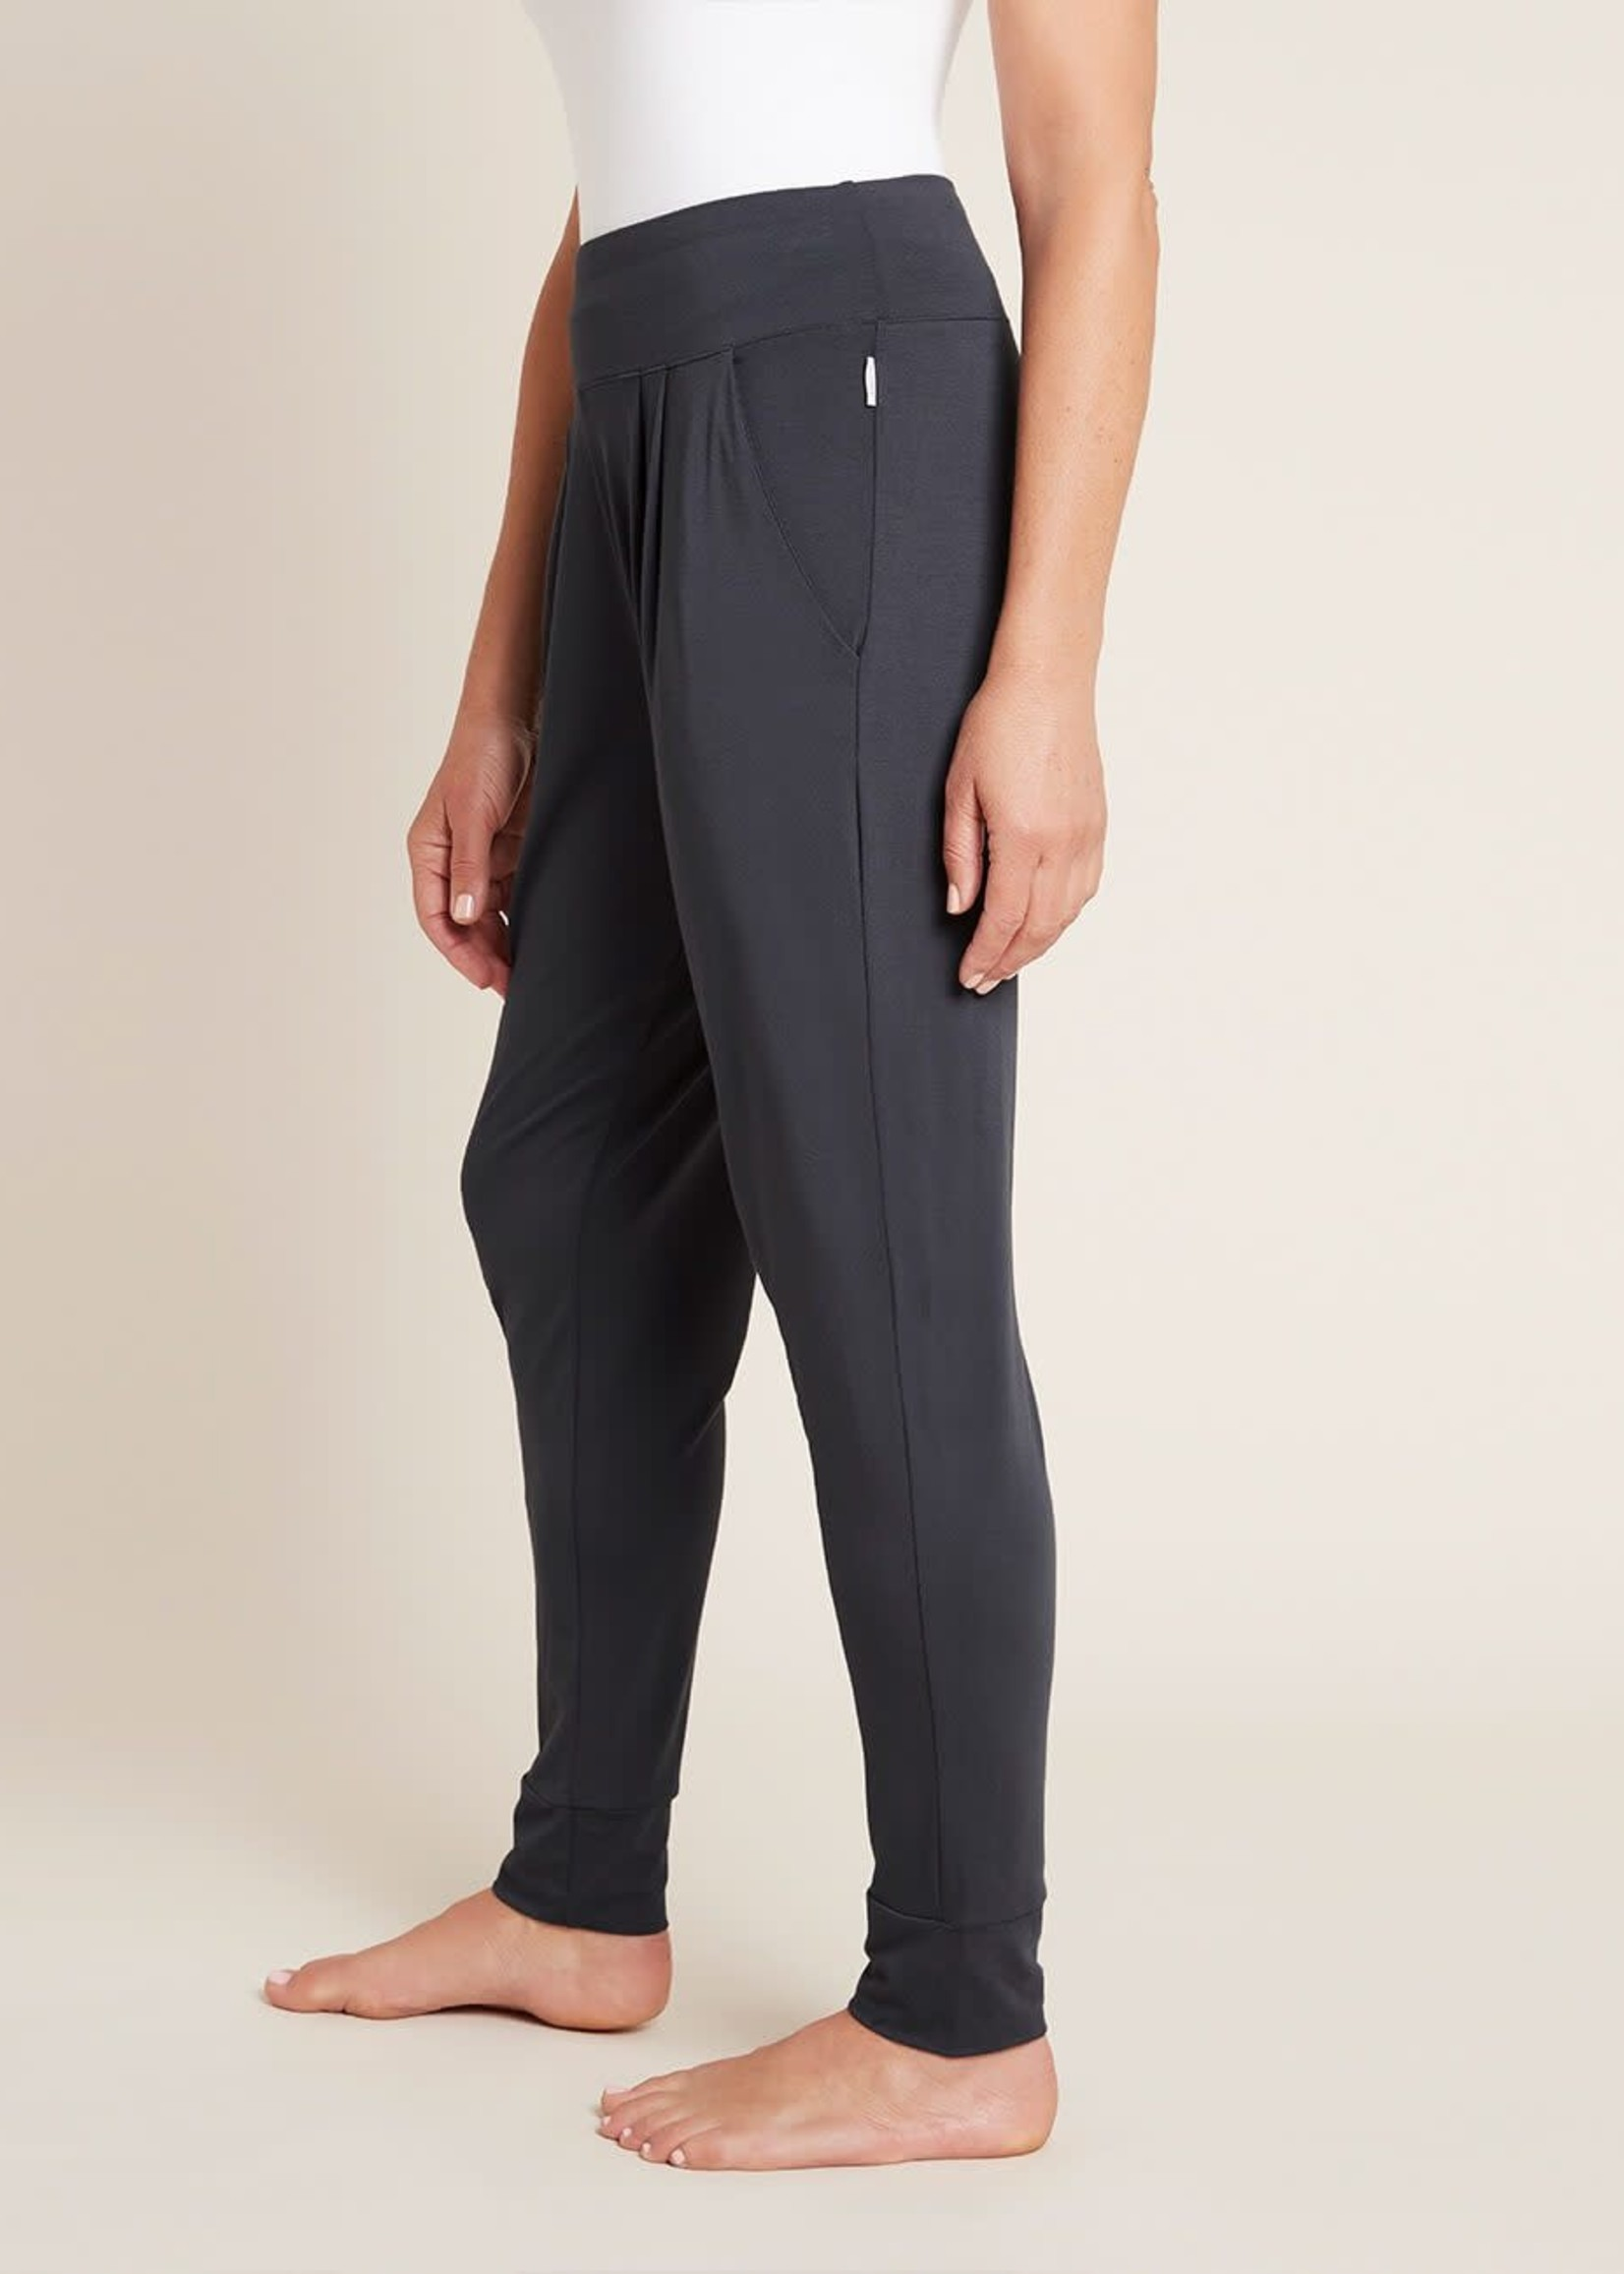 Boody North America Downtime Lounge Pant